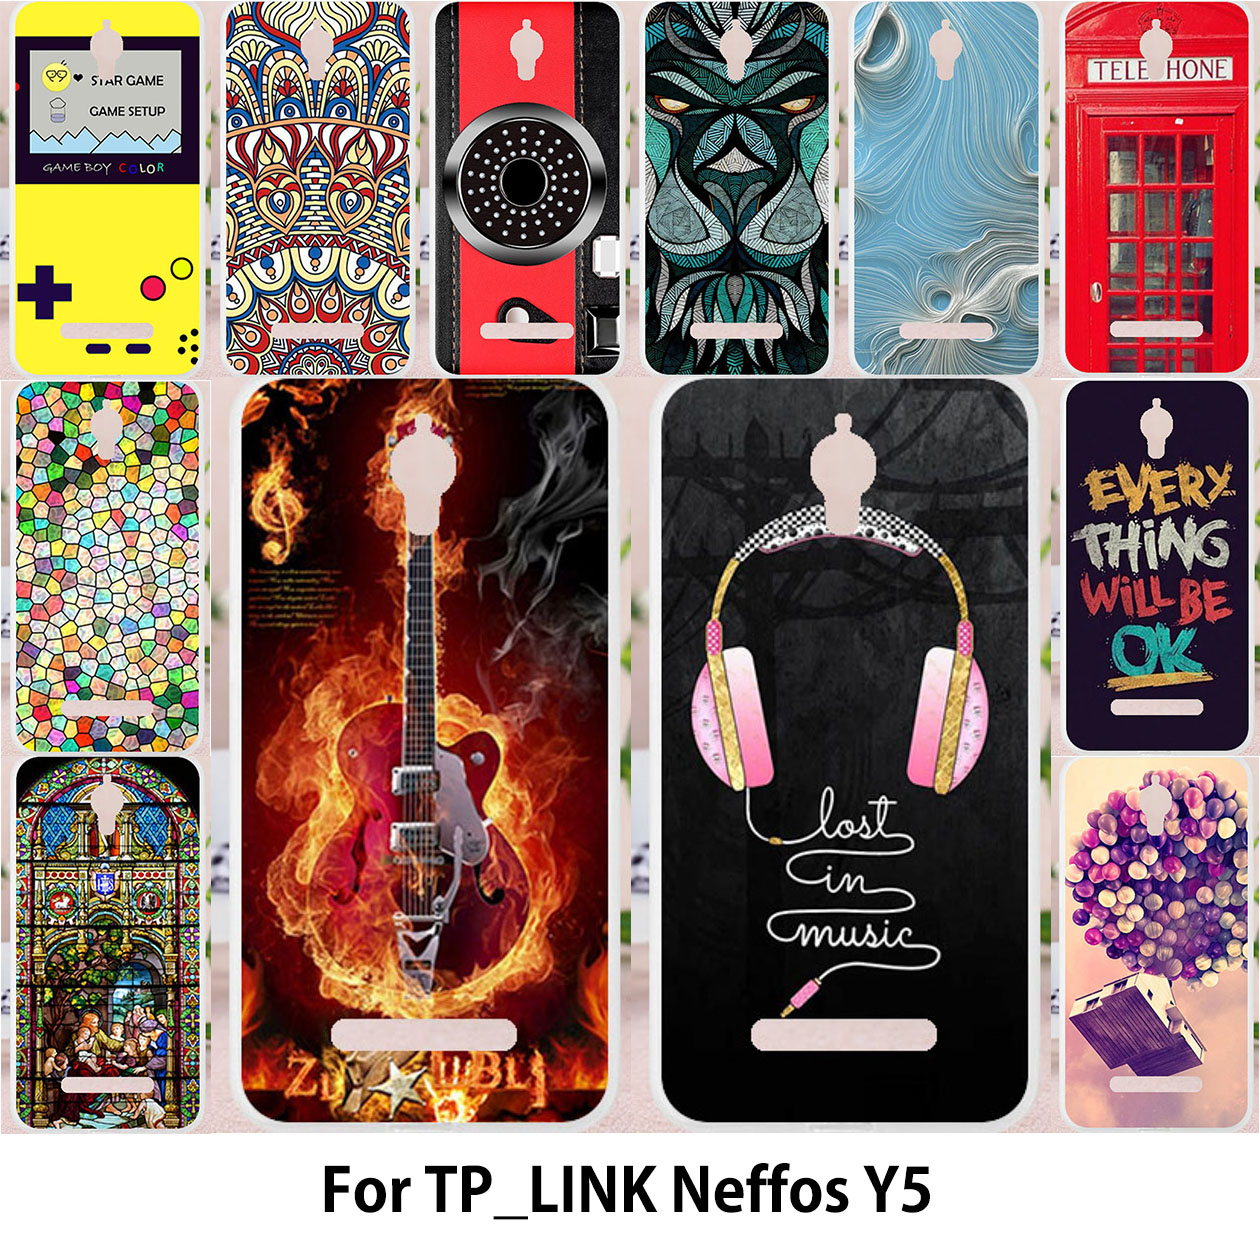 TAOYUNXI For TP-LINK Neffos Y5 cases Silicon Case For TPLINK Neffos Y5 tp link TP802A Cover Painting Camera Covers Patterned